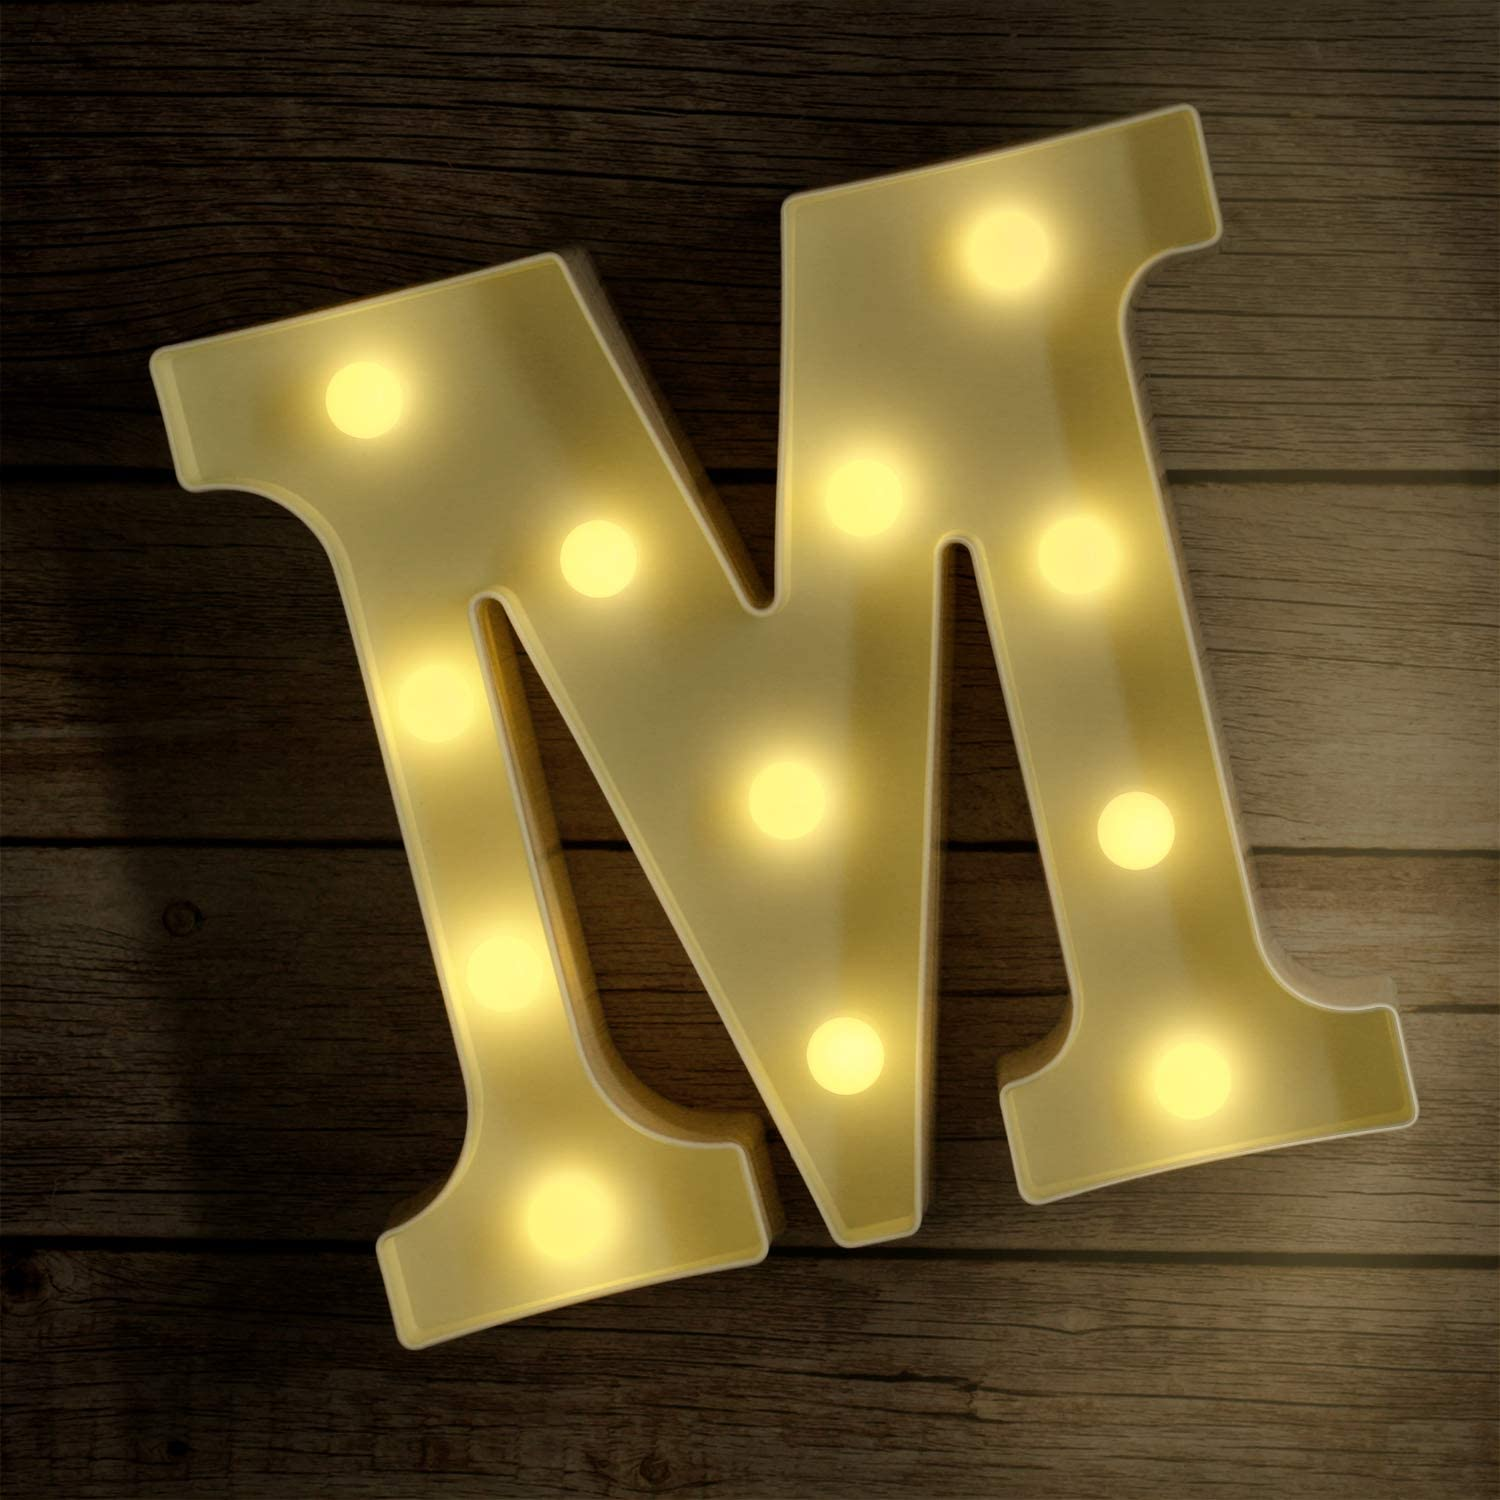 Novelty Place Alphabet Light - Marquee Letters Sign with Shining Bulbs, Standing Night Lamp for Wedding Home Party Bar Décor - Battery Powered, Warm White (Letter M)